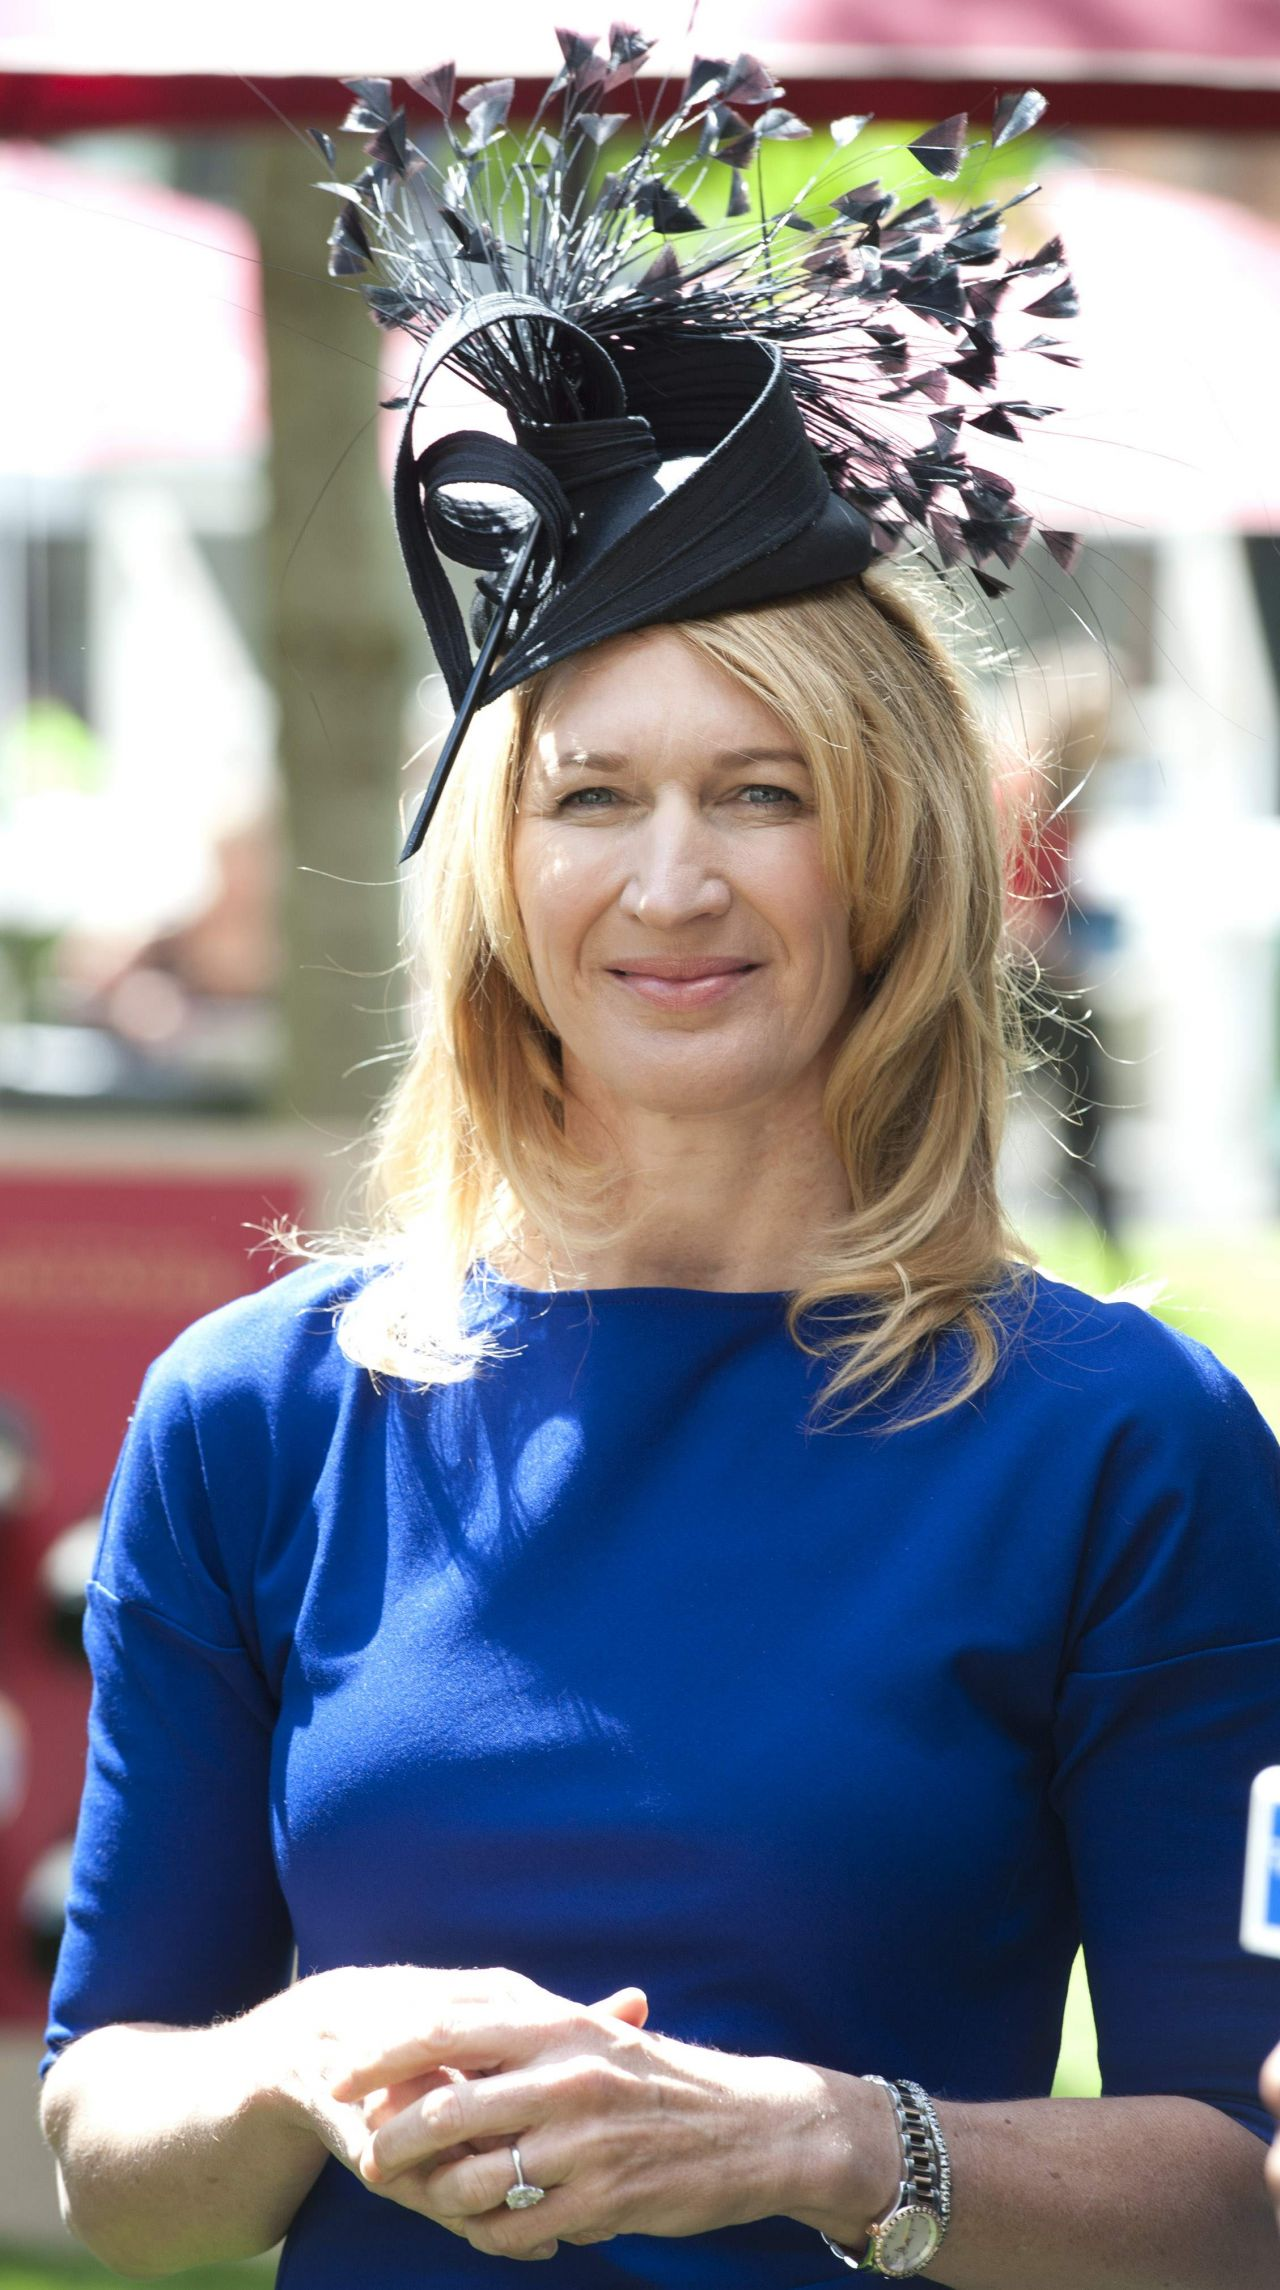 Graf Attends Day 1 of Royal Ascot at Ascot Racecourse June 2014